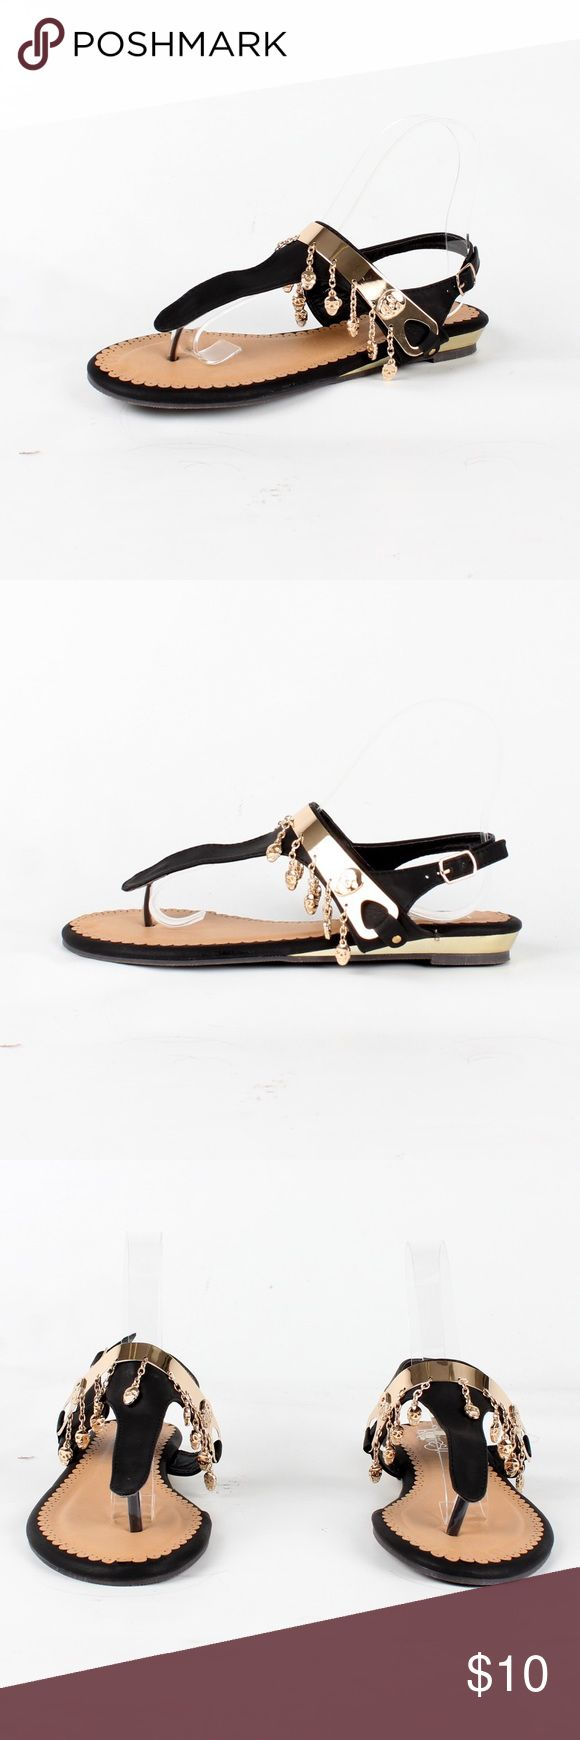 Slingback split-toe sandal (Jetta-10 Black) ¥ my boutique ¥                                                                                                                        😍All items brand new 😢No price negotiation please ✌🏻️Bundle for discounts 😬No trades & PayPal 😊Please feel free to ask any questions Shoes Sandals